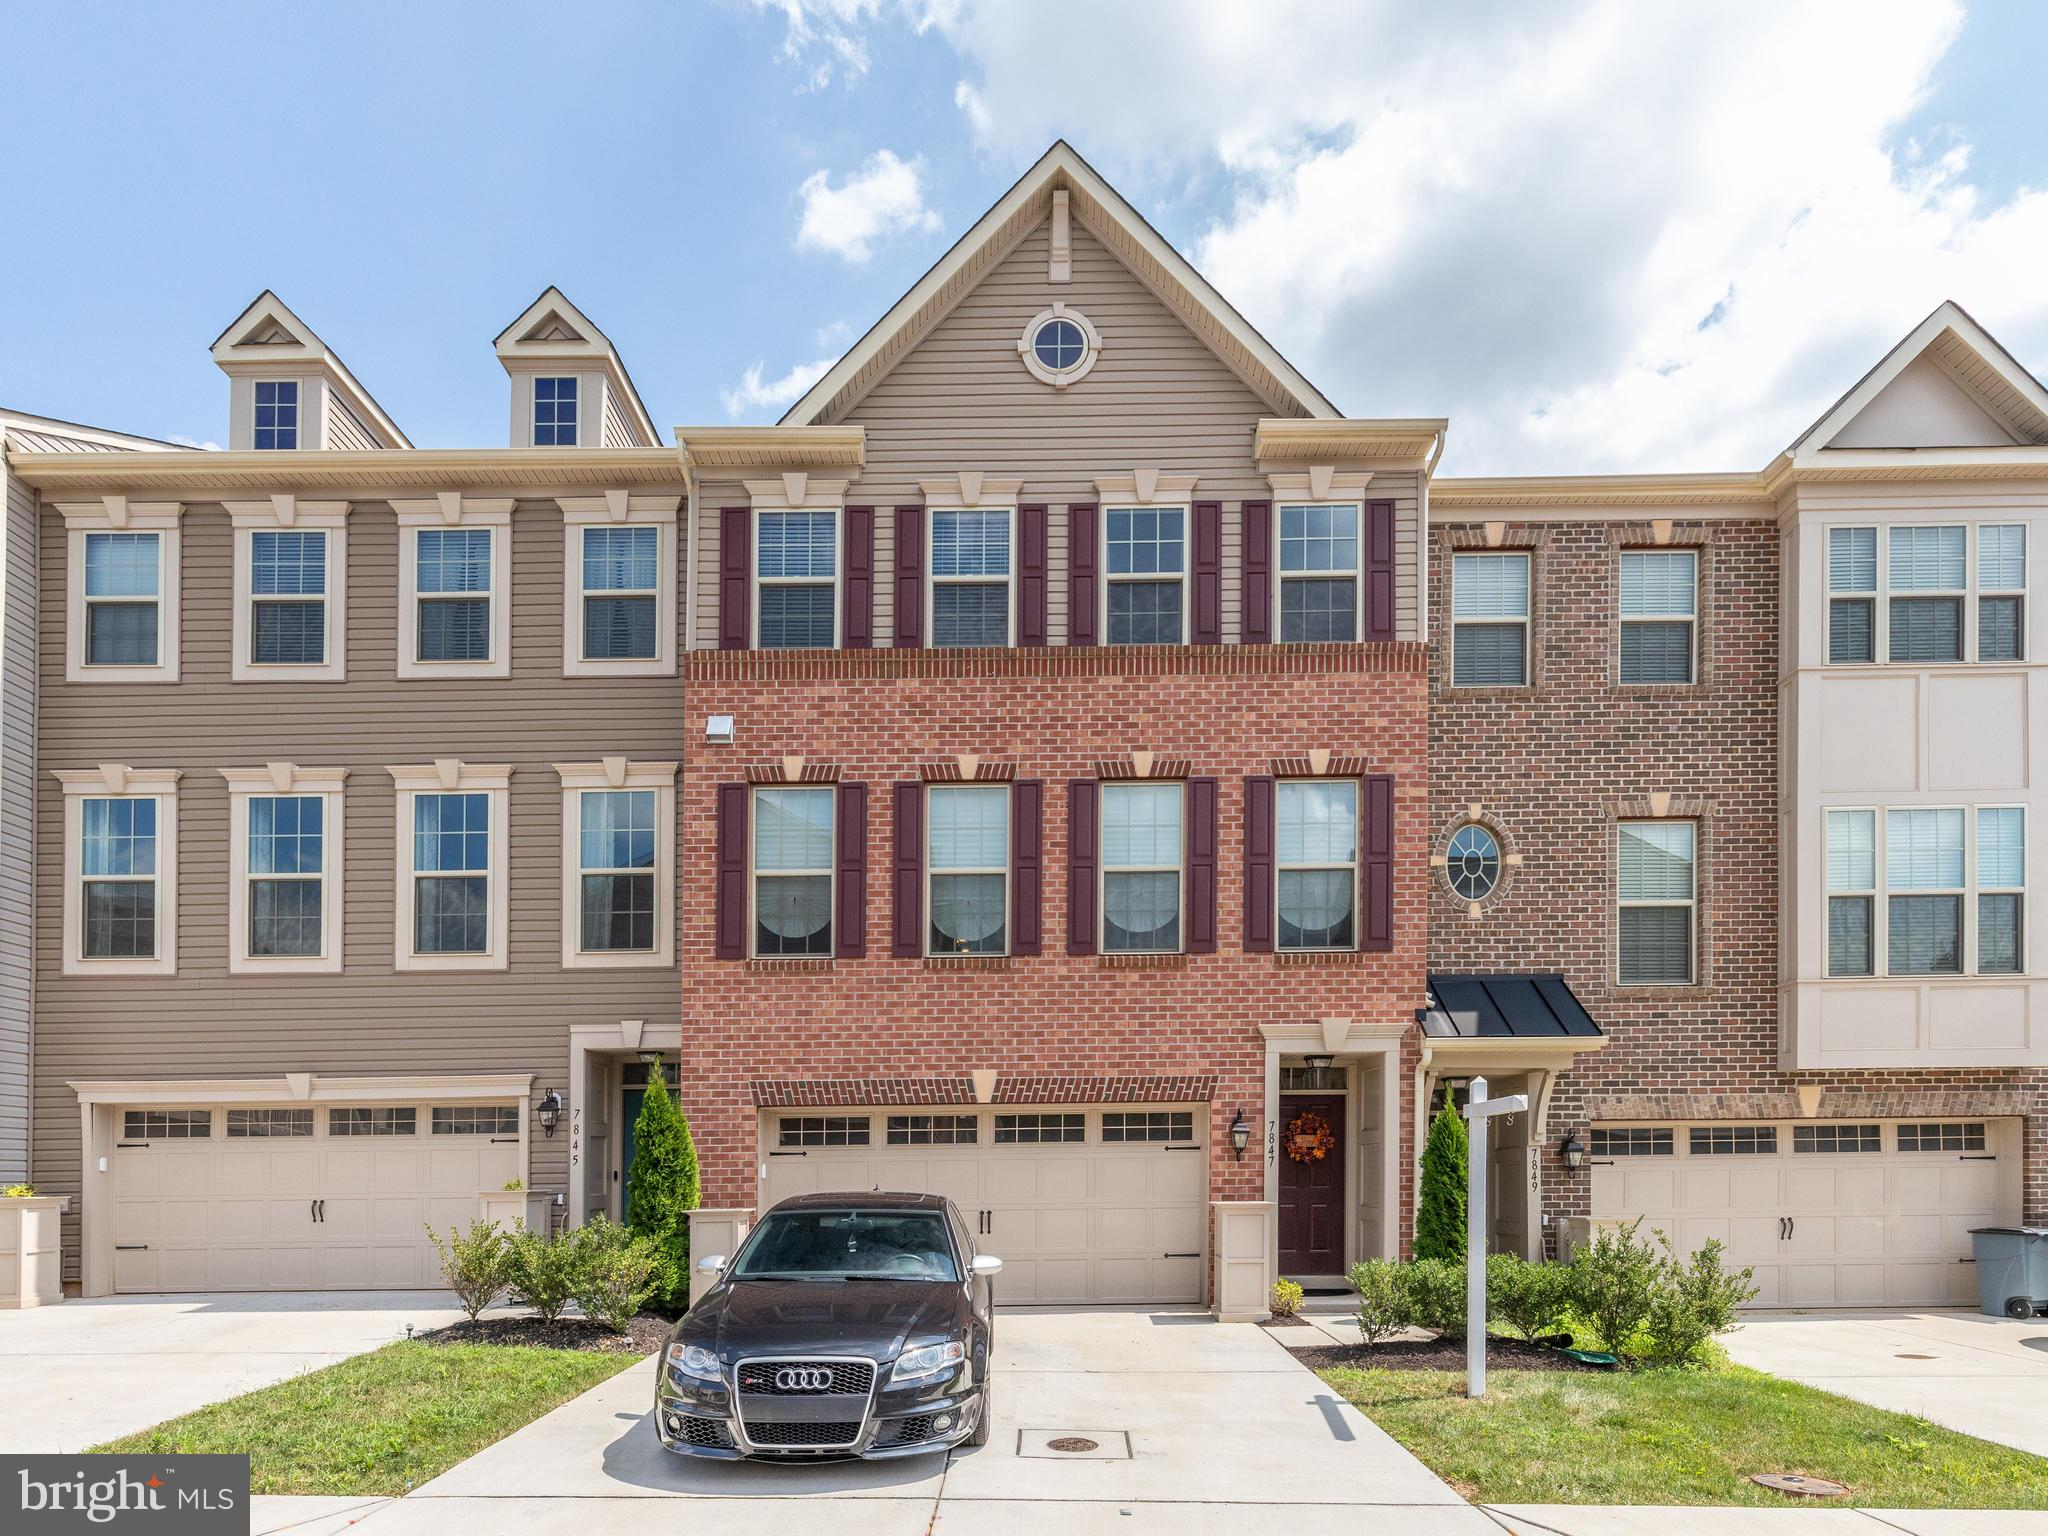 7847 RAPPAPORT DRIVE, JESSUP, MD 20794